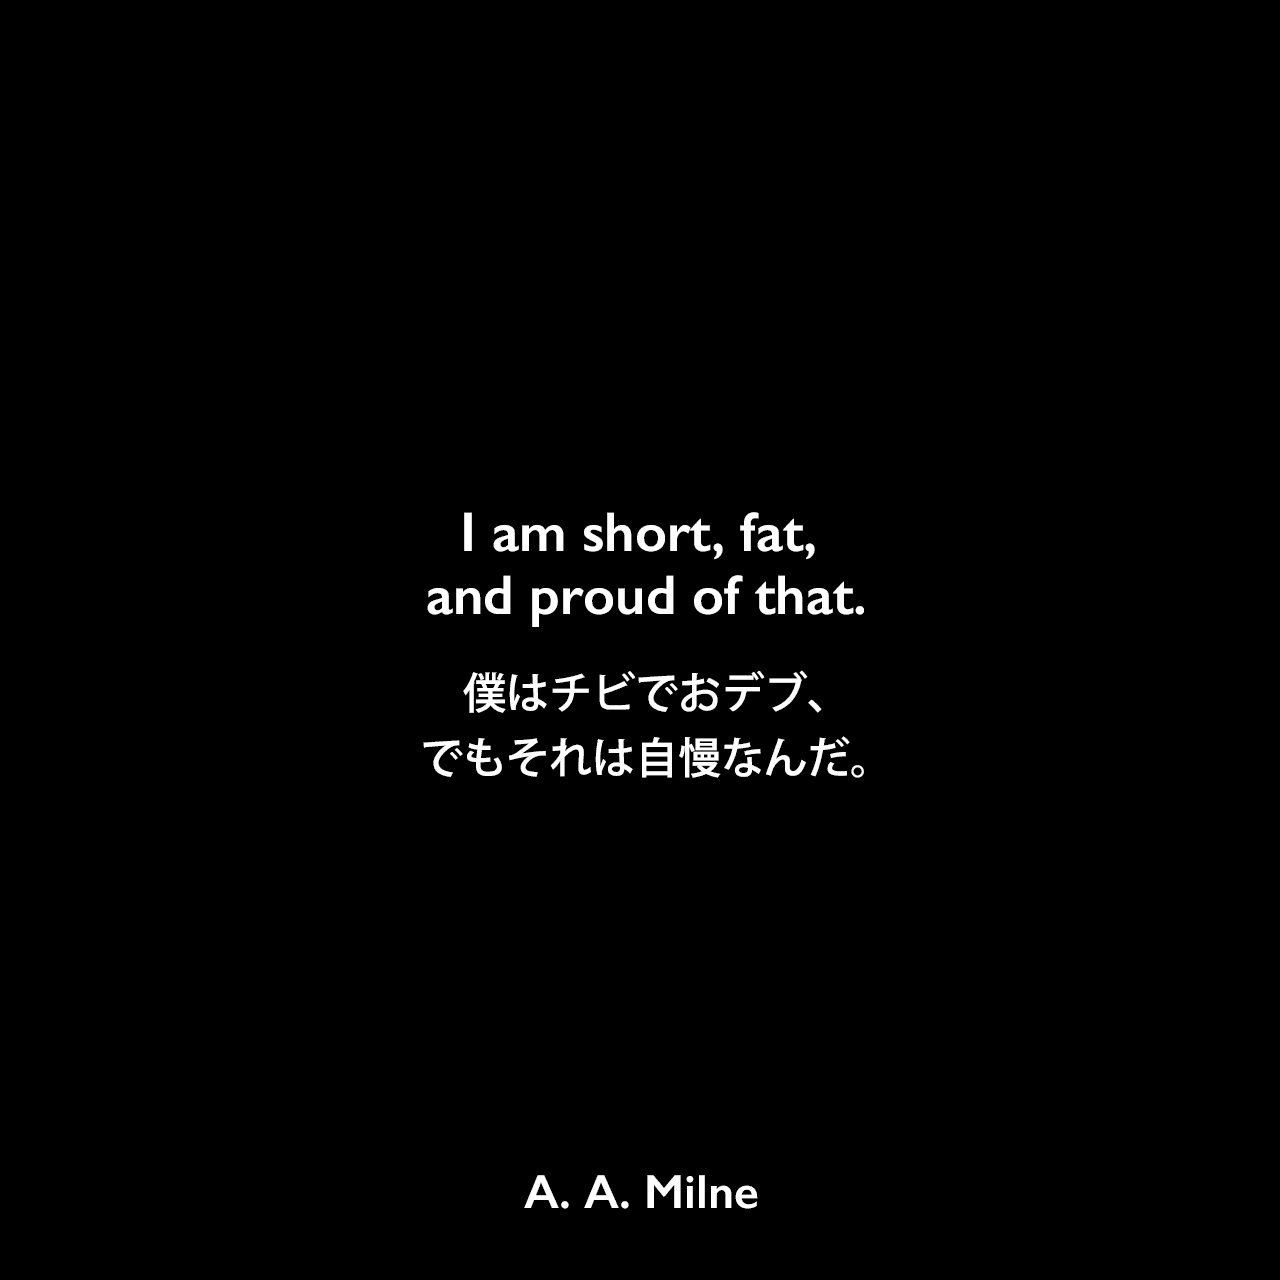 I am short, fat, and proud of that.僕はチビでおデブ、でもそれは自慢なんだ。A. A. Milne